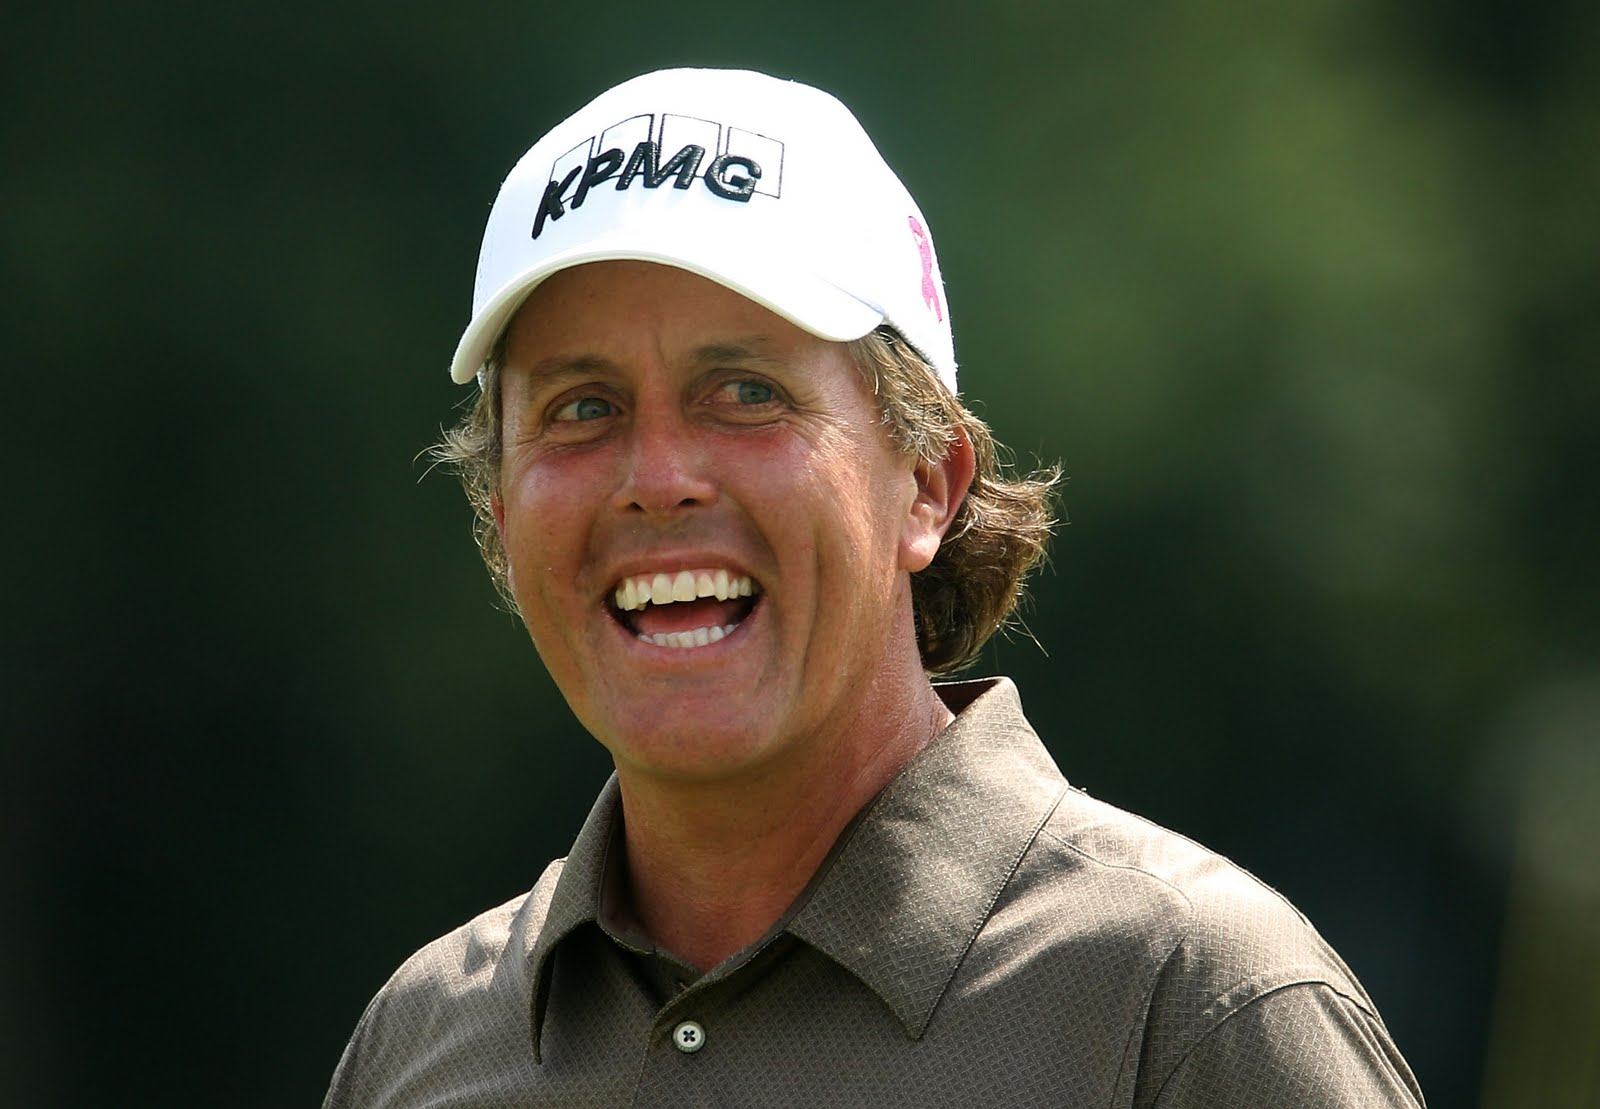 how tall is phil mickelson